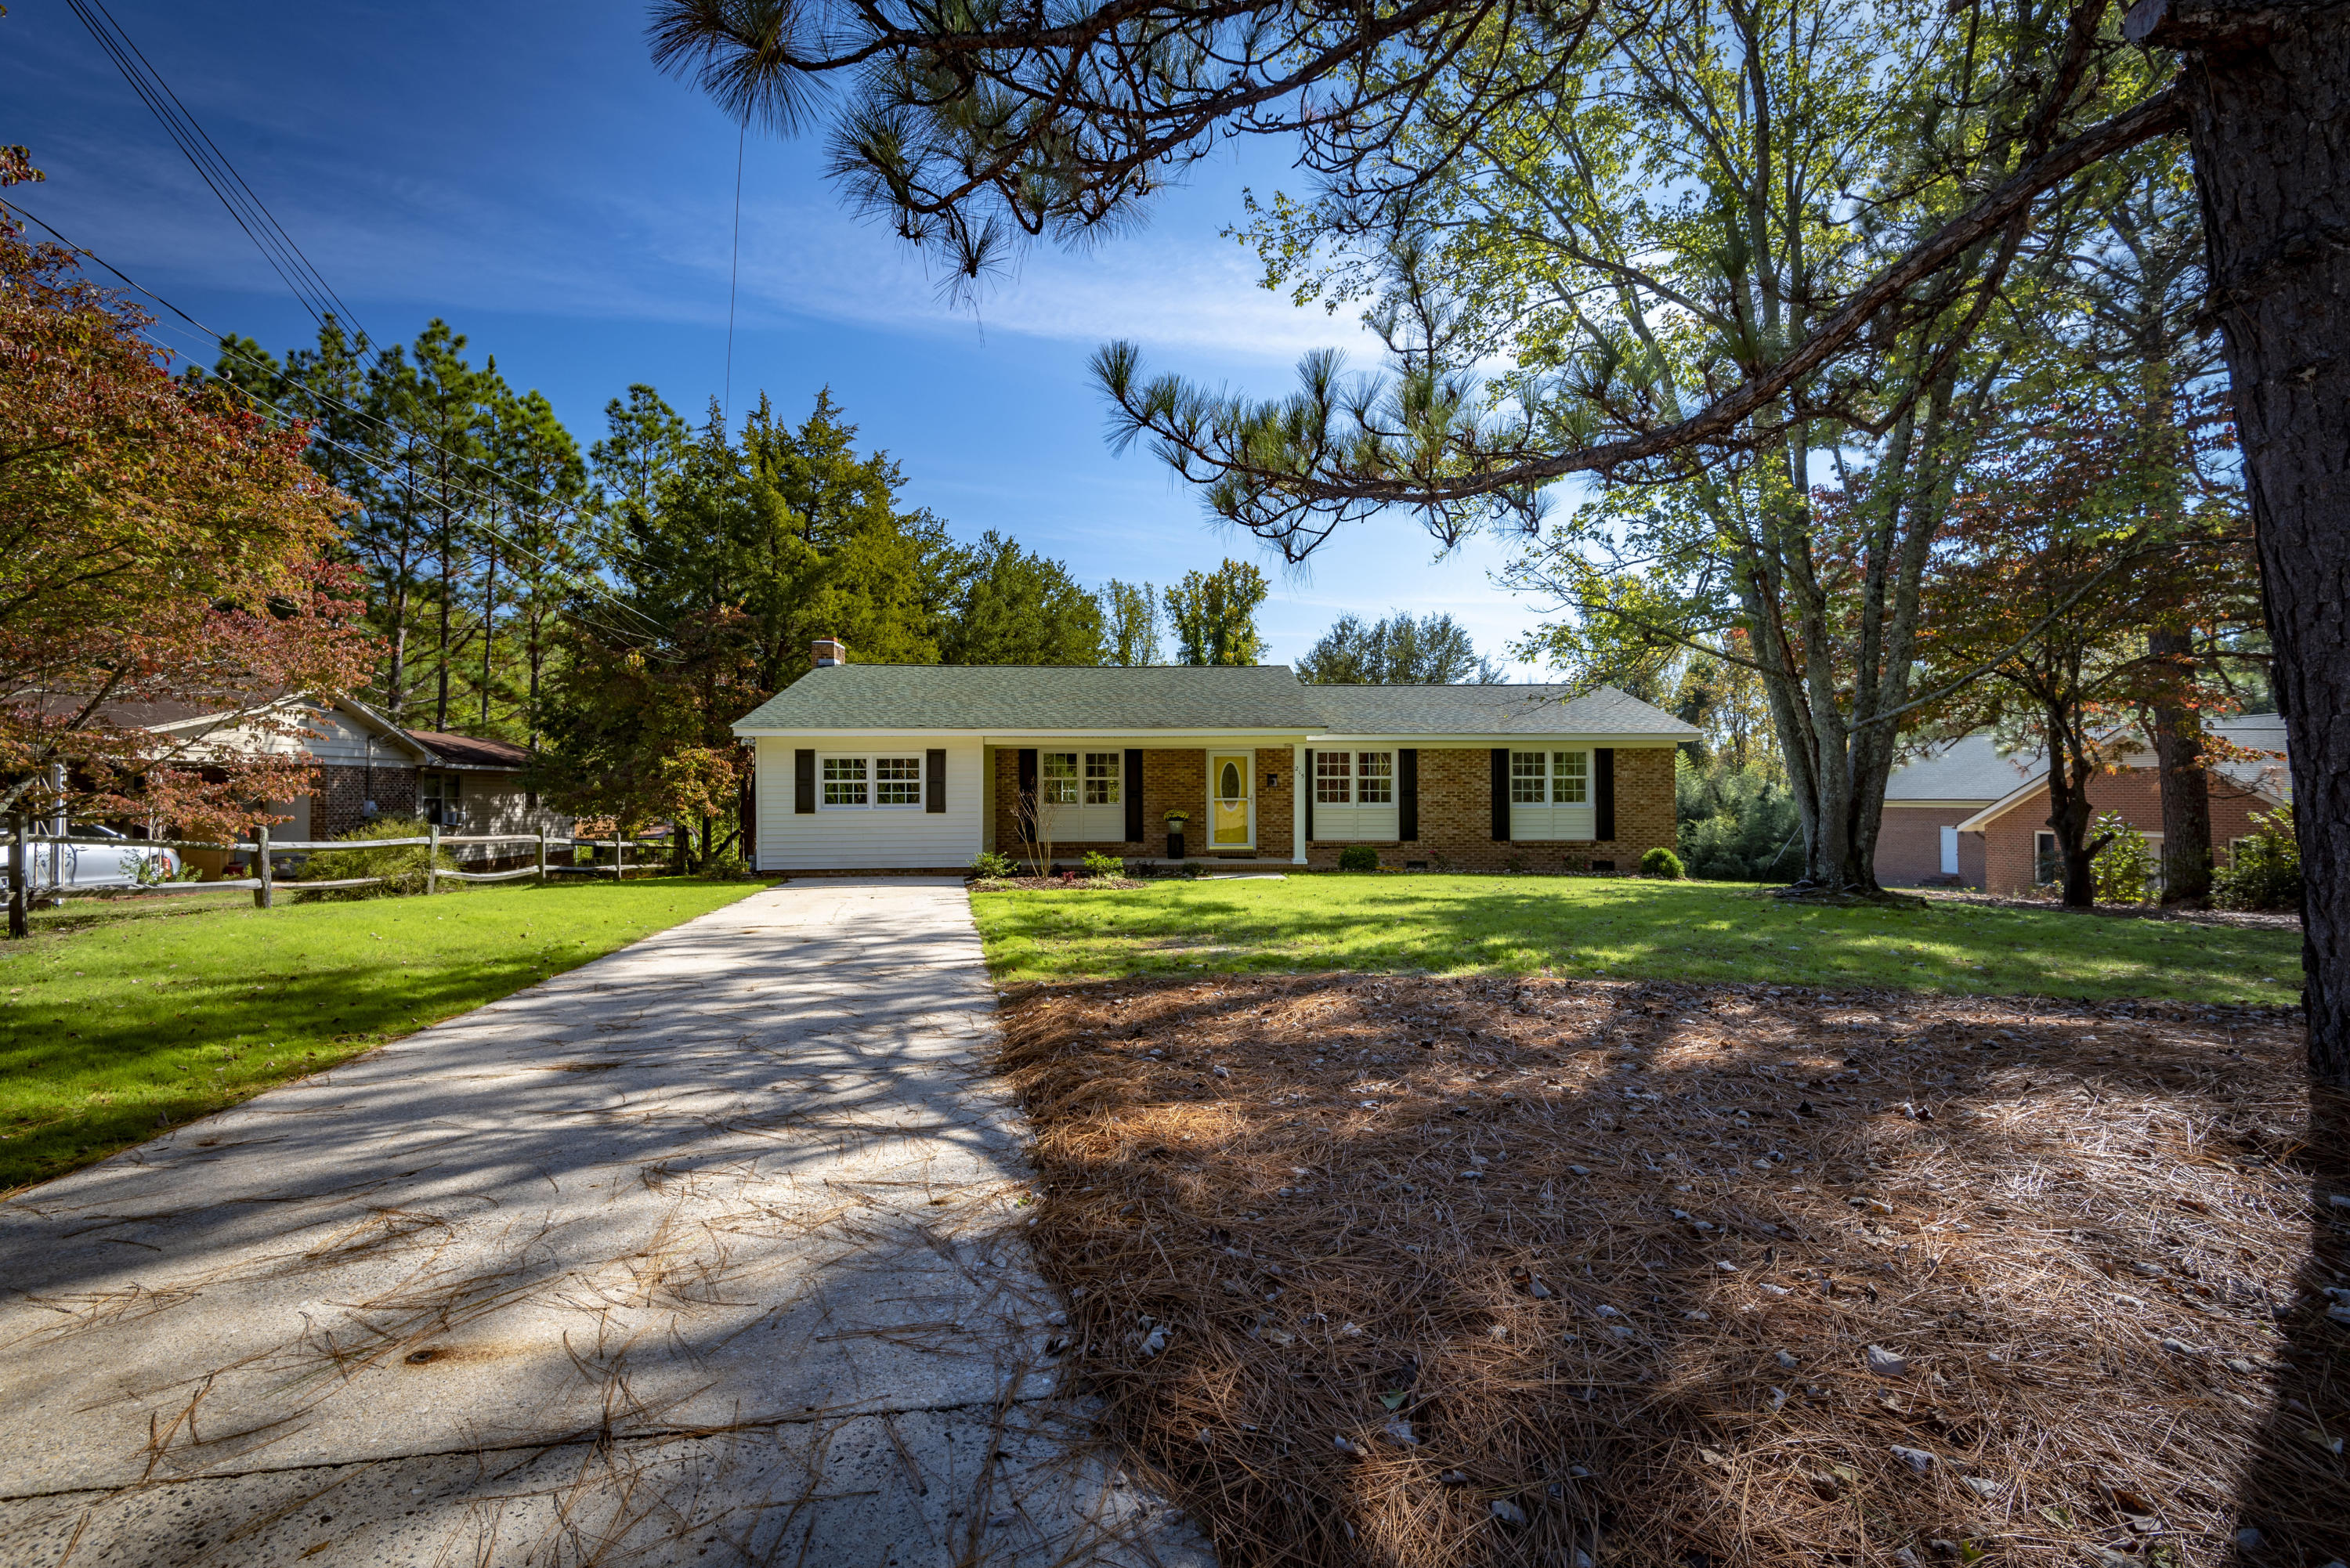 215 S Pinehurst Street, Aberdeen in Moore County, NC 28315 Home for Sale